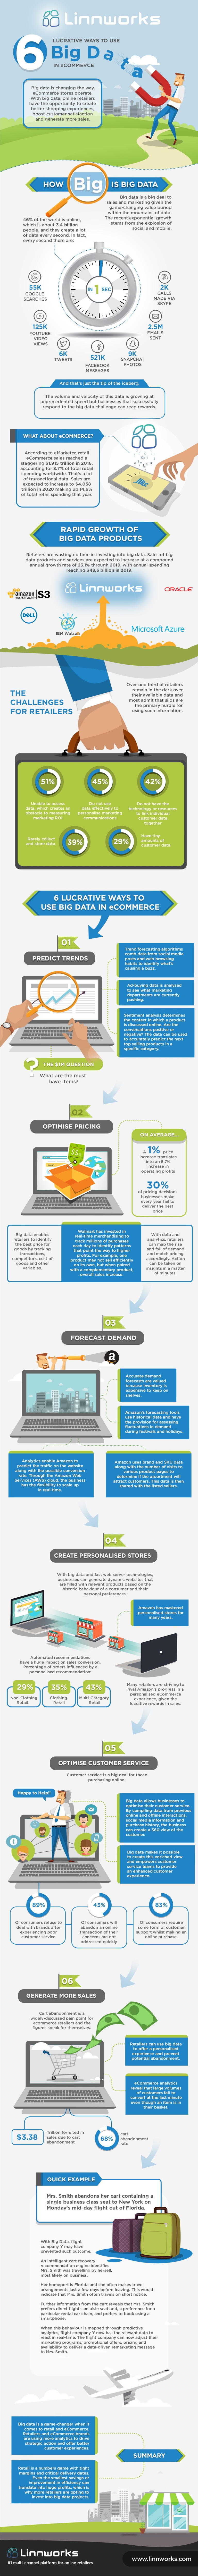 6-lucrative-ways-to-use-big-data-in-ecommerce-infographic.jpg